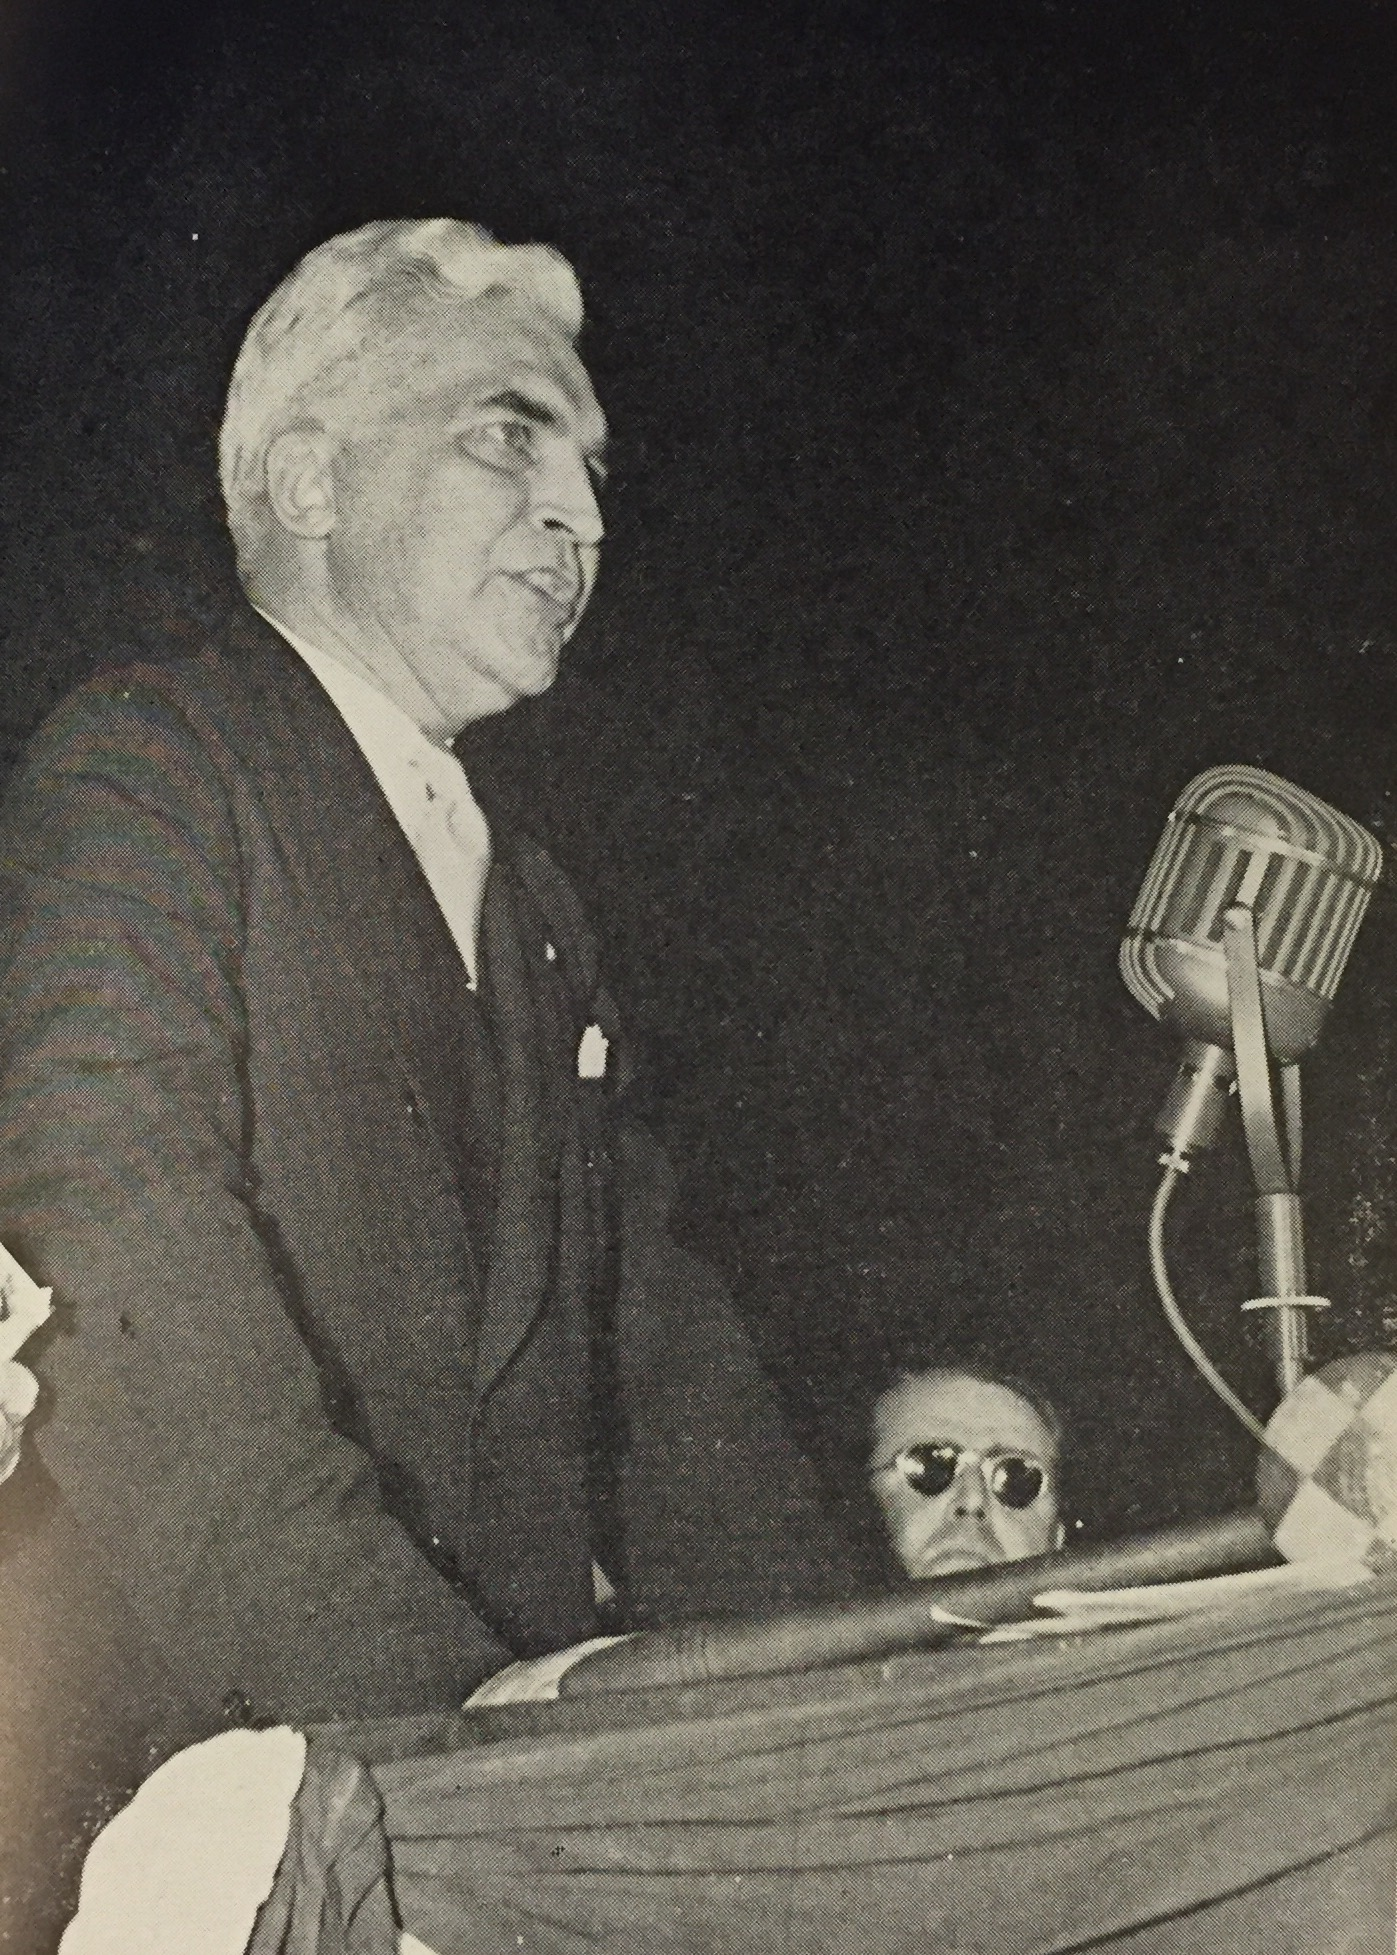 McNutt speaking before delegates of the 1940 Presidential Election. After Roosevelt decided to run for a third term, McNutt withdrew his consideration for the nomination. Image courtesy of Mrs. Roy Garrett Watson/I. George Blake.